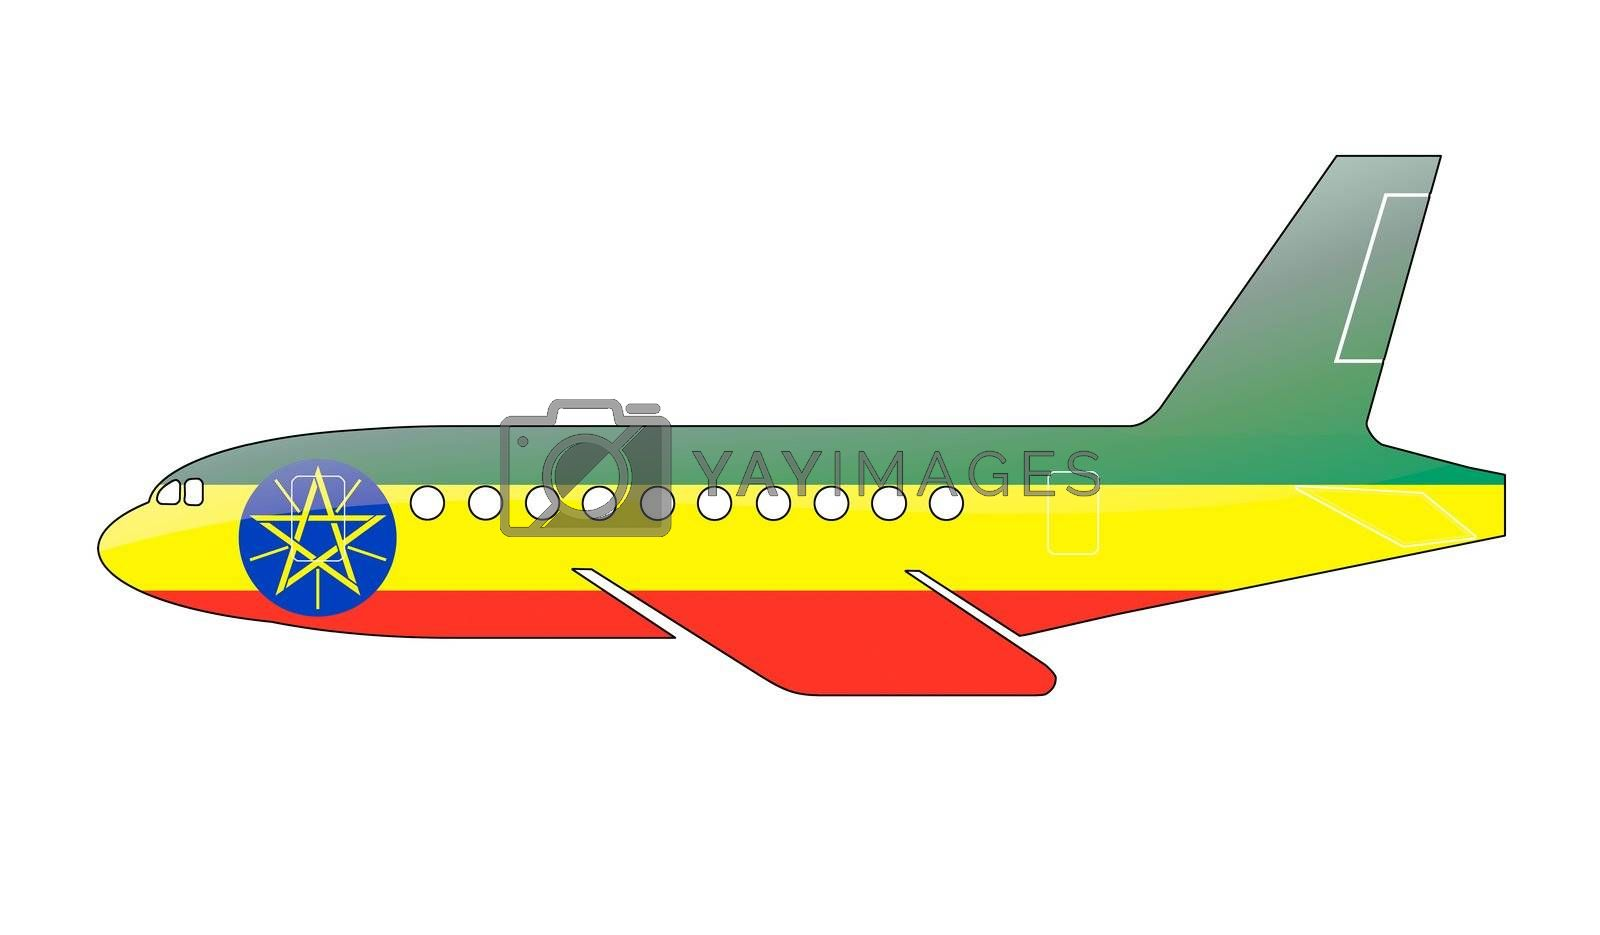 The Ethiopia flag painted on the silhouette of a aircraft. glossy illustration